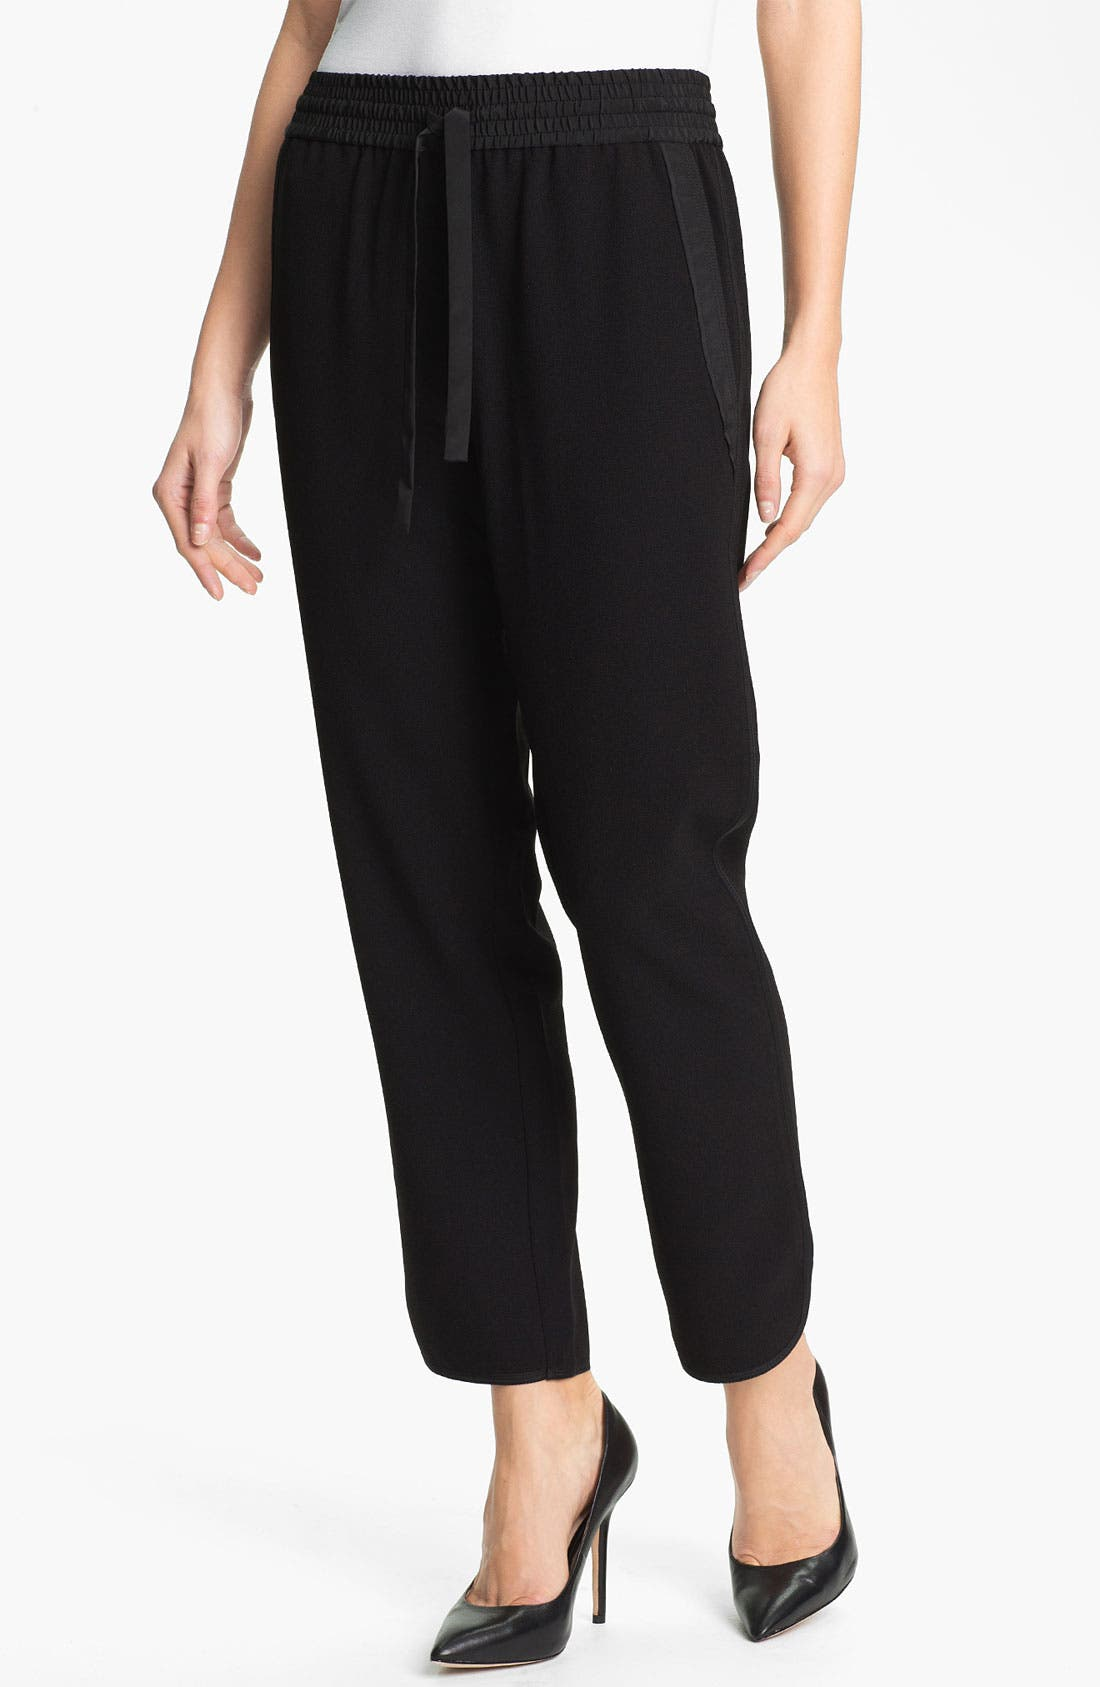 Alternate Image 1 Selected - Kenneth Cole New York 'Brody' Pull On Pants